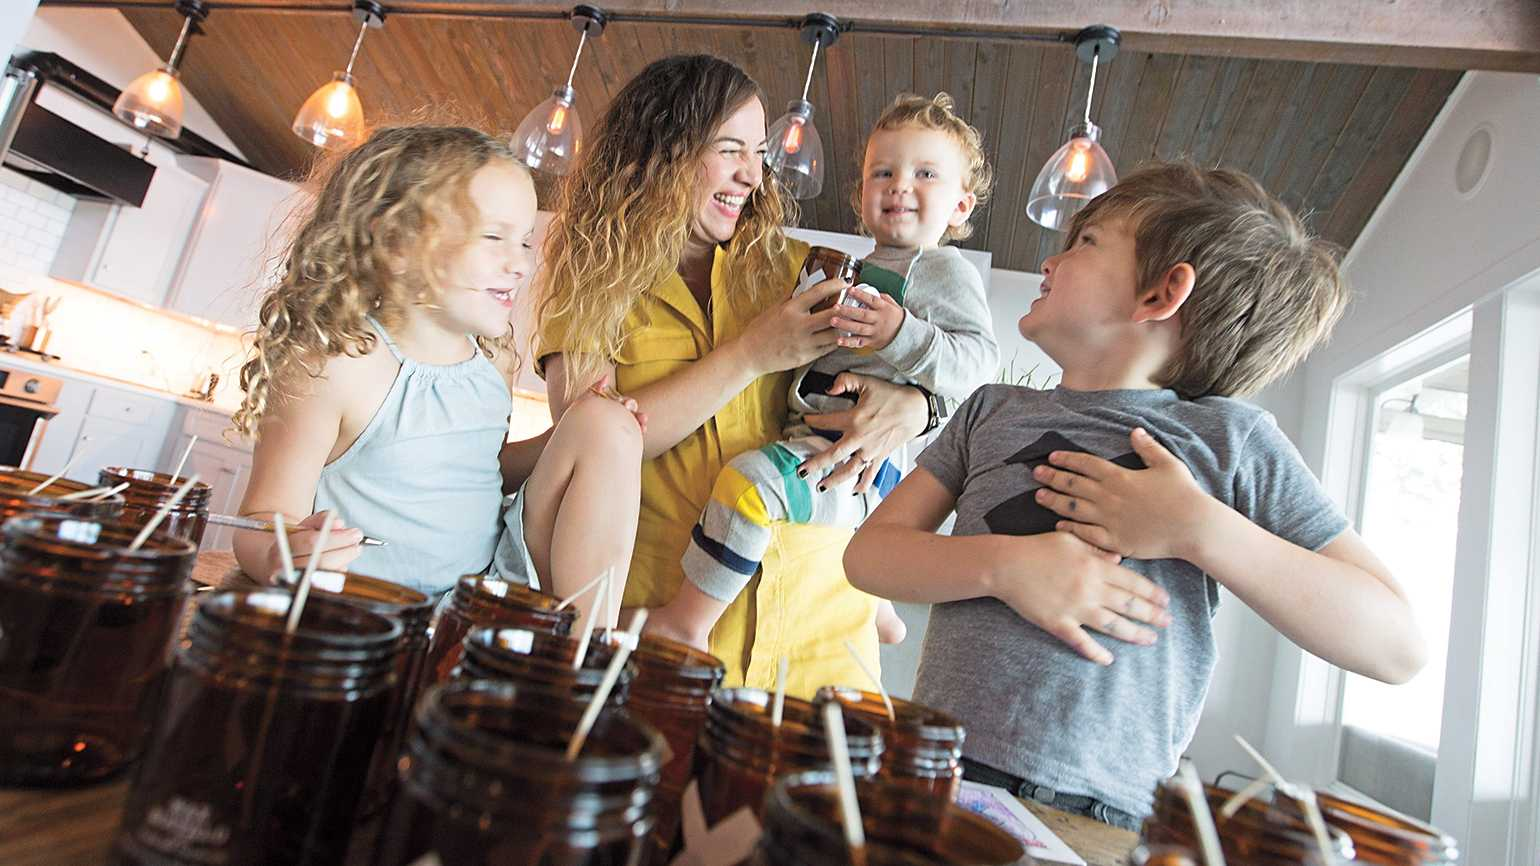 Wax Buffalo candle creator Alicia with her kids [from left]: Navy, Oxley and Satchel